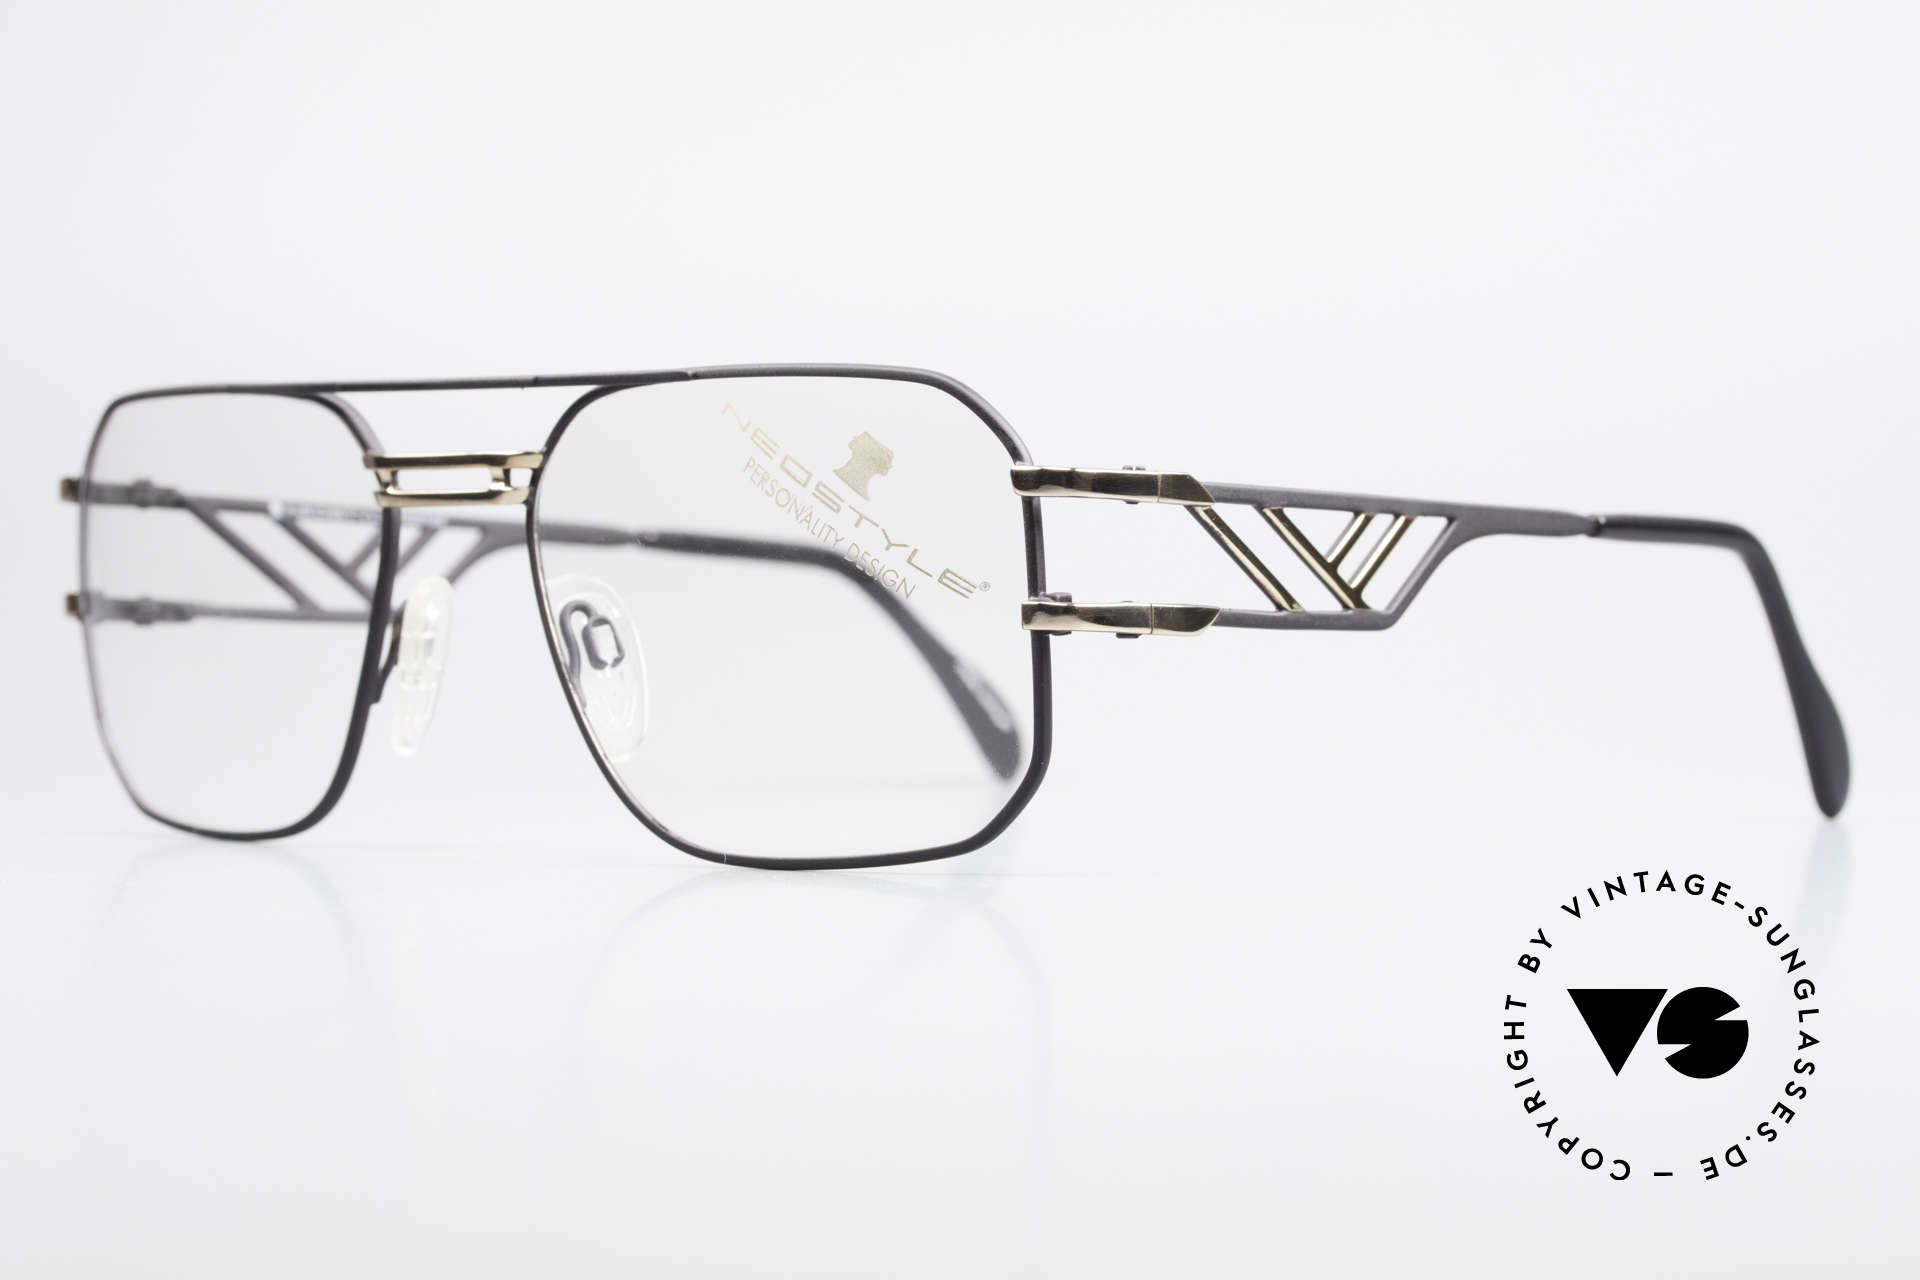 Neostyle Boutique 306 Champion Vintage Frame 80s, incredible top-quality from 1986 (built to last), Made for Men